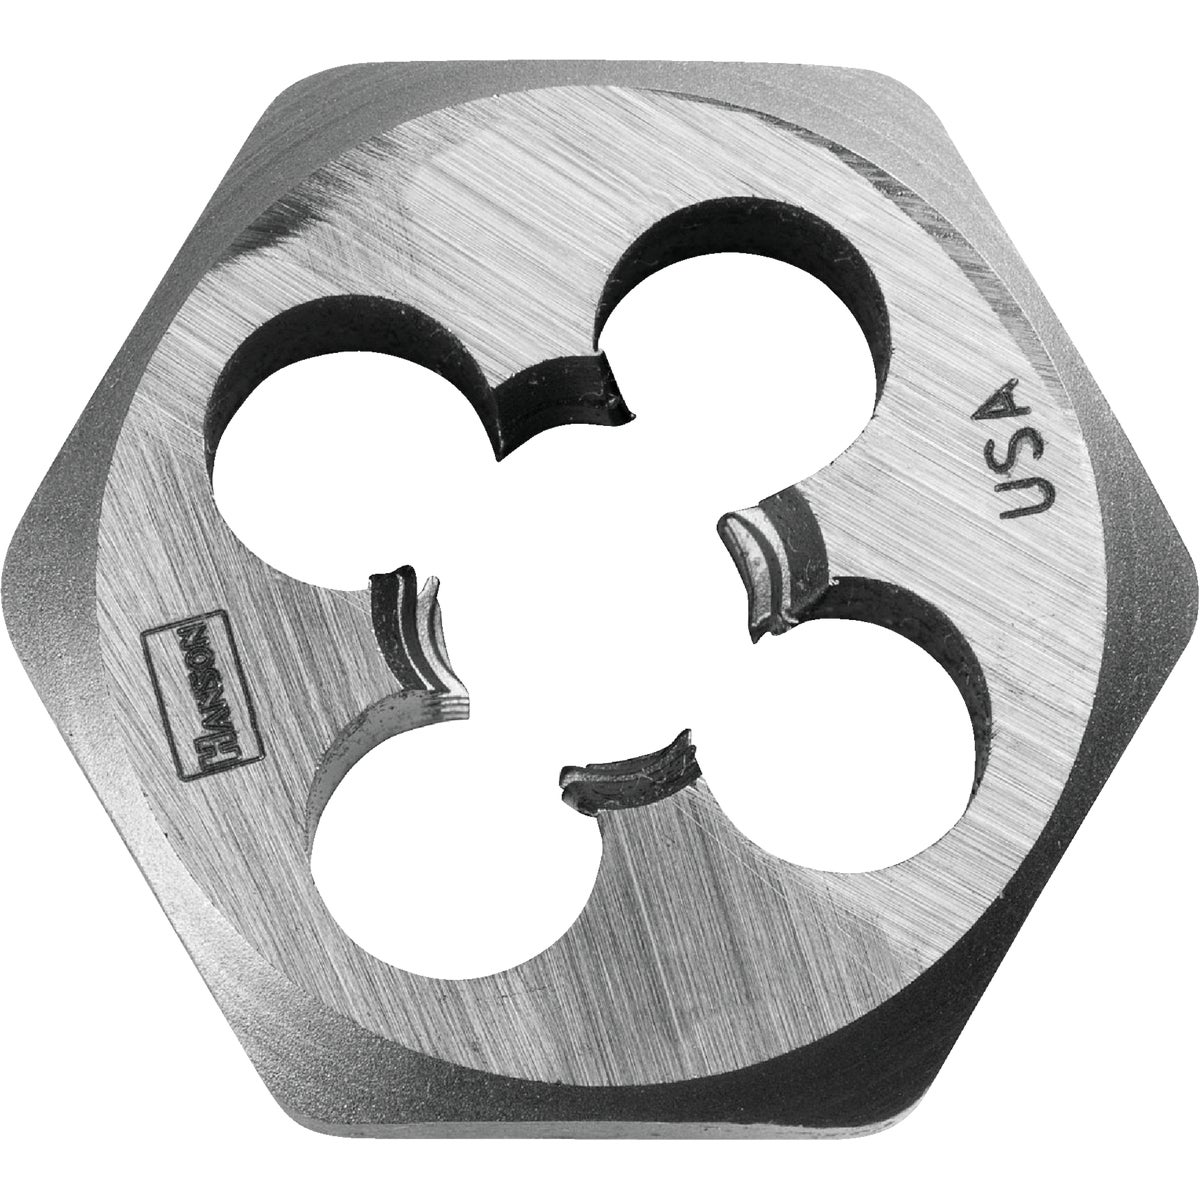 3/4X16 NF HEX DIE - 6860ZR by Irwin Industr Tool